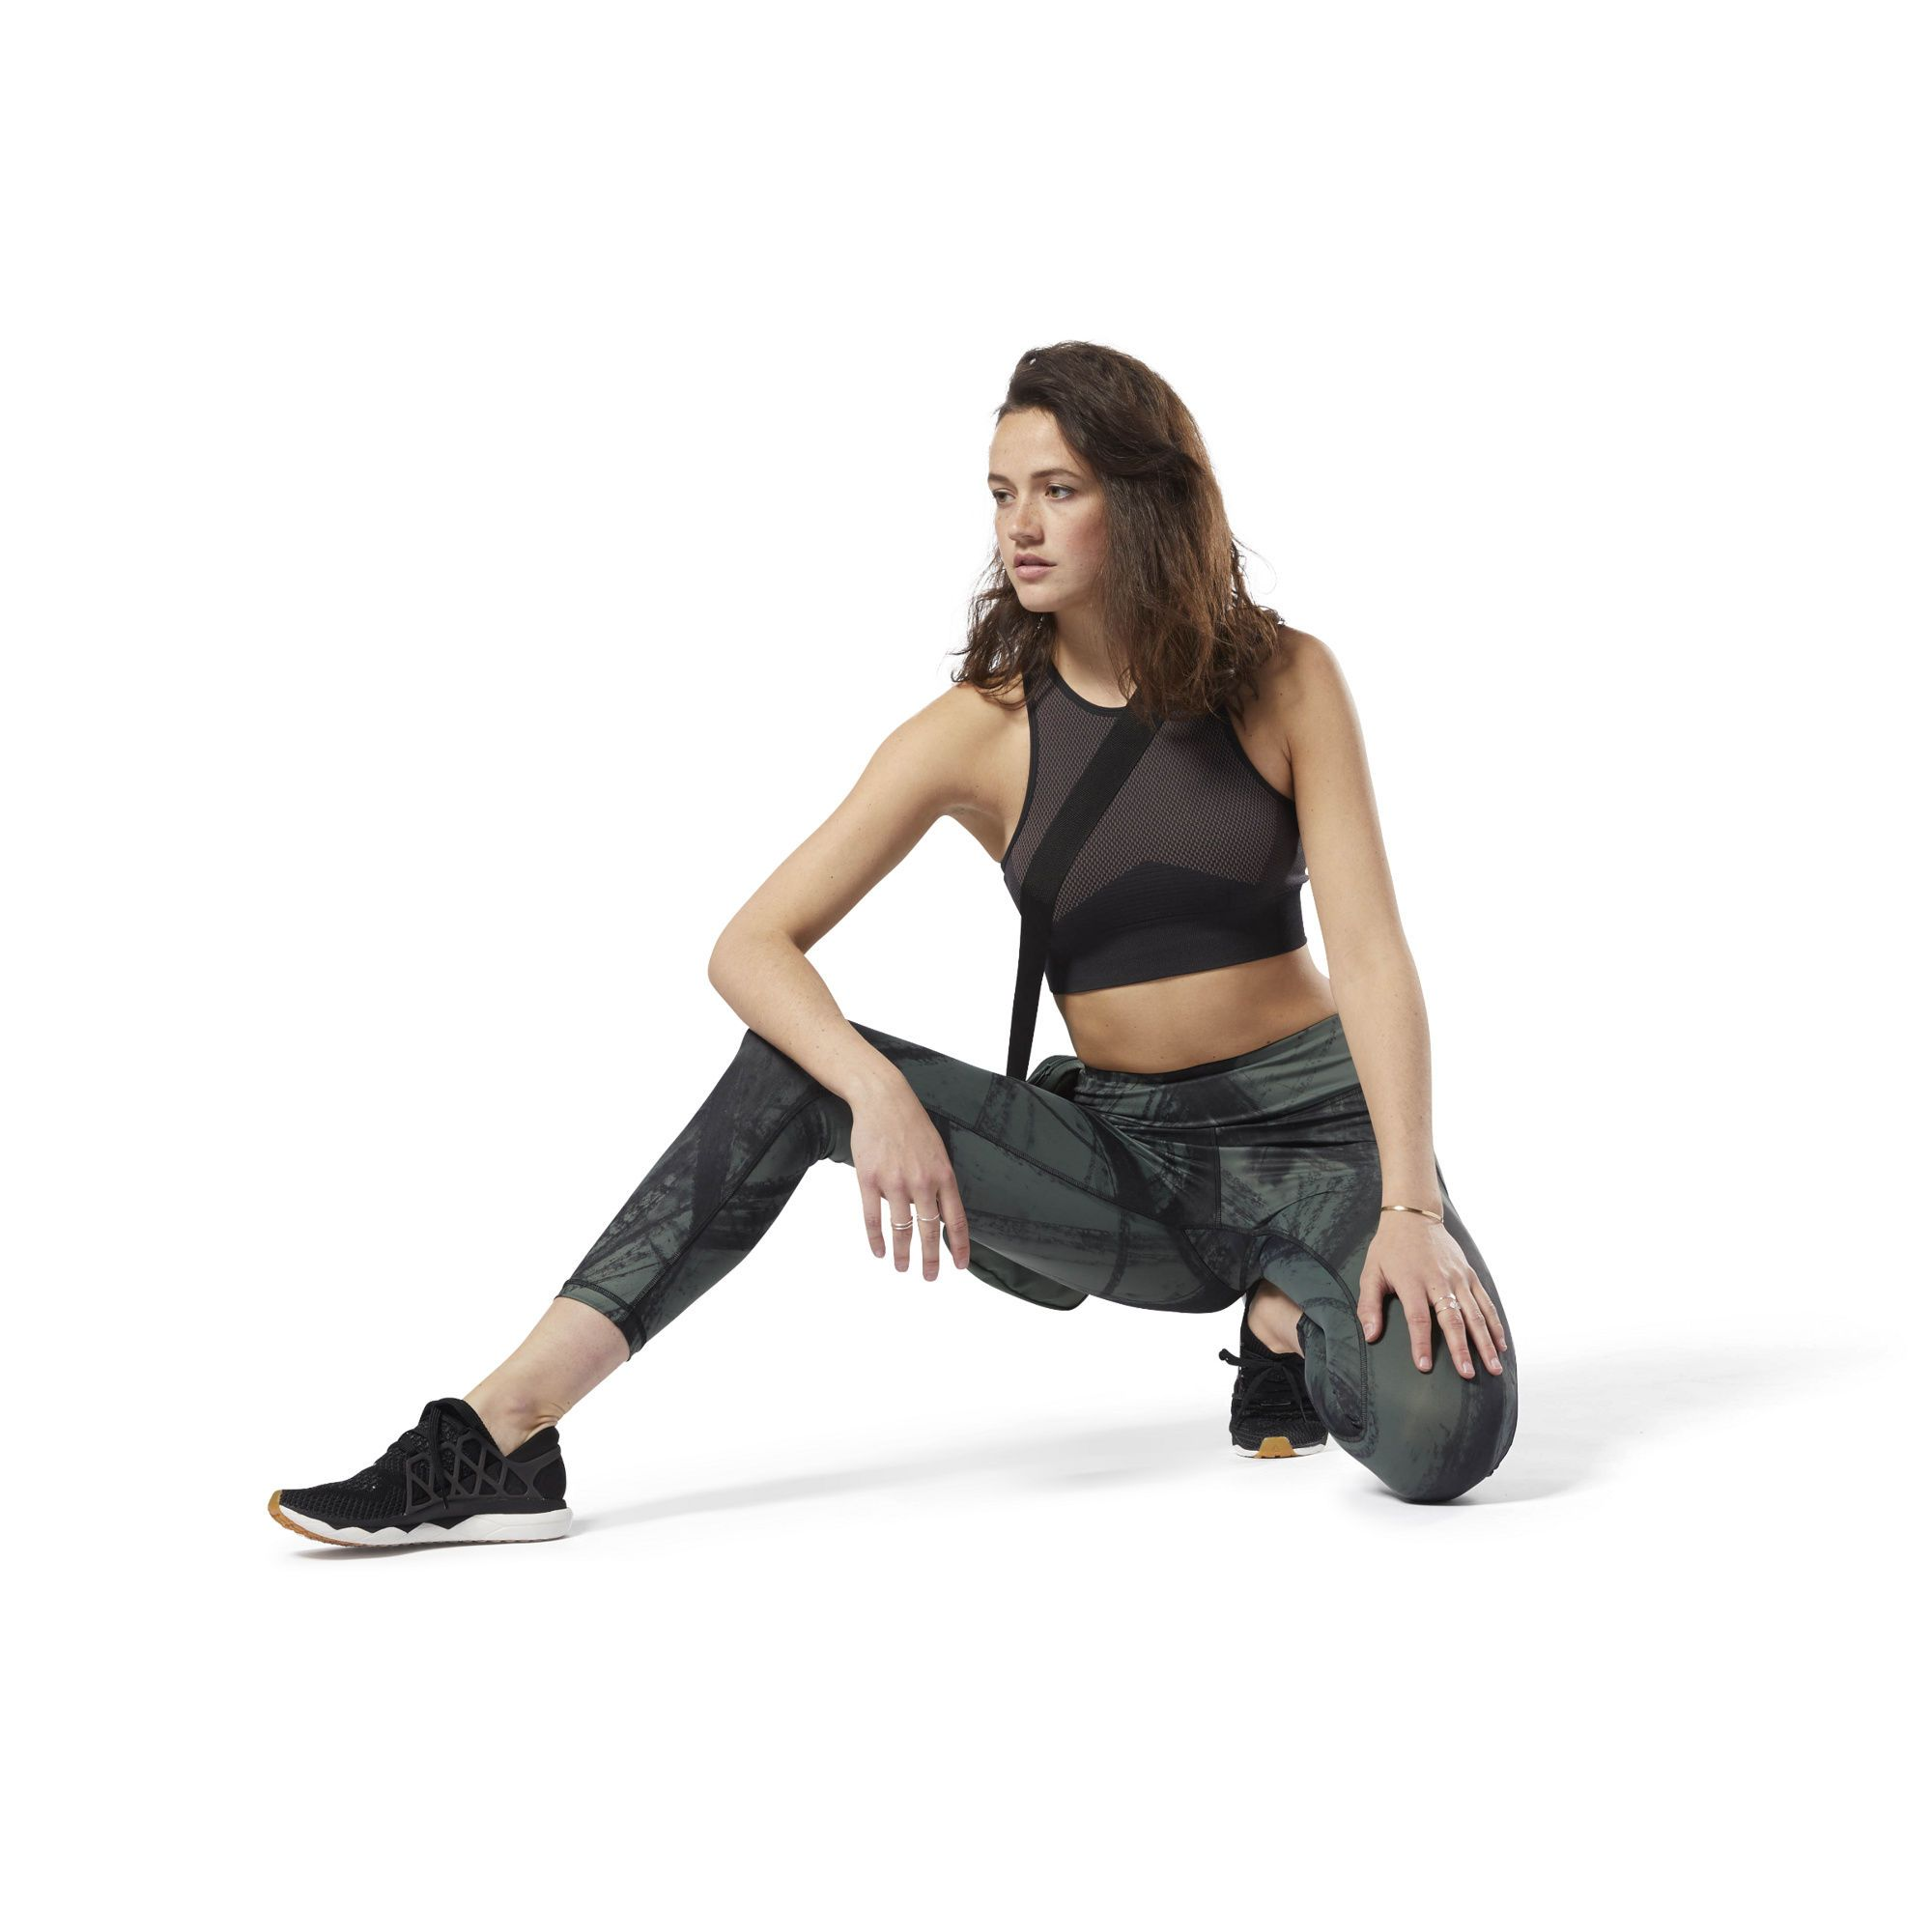 Shop For Lux Bold 7 8 Tight Chalked Movement Green At Reebok Com See All The Styles And Colors Of Lux B Womens Workout Outfits Green Leggings Reebok Women